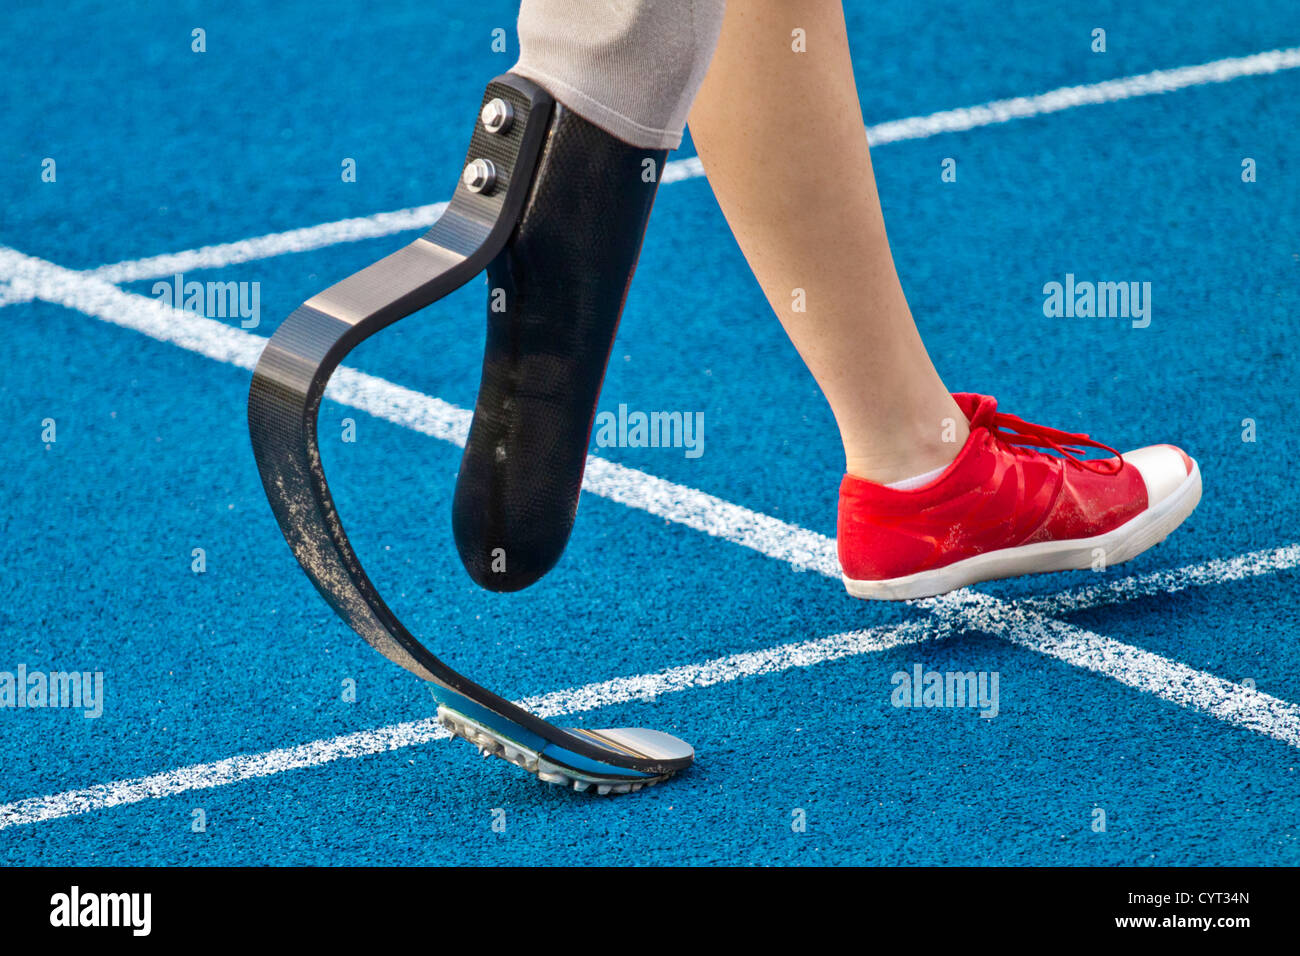 female athlete with handicap is crossing the line - Stock Image